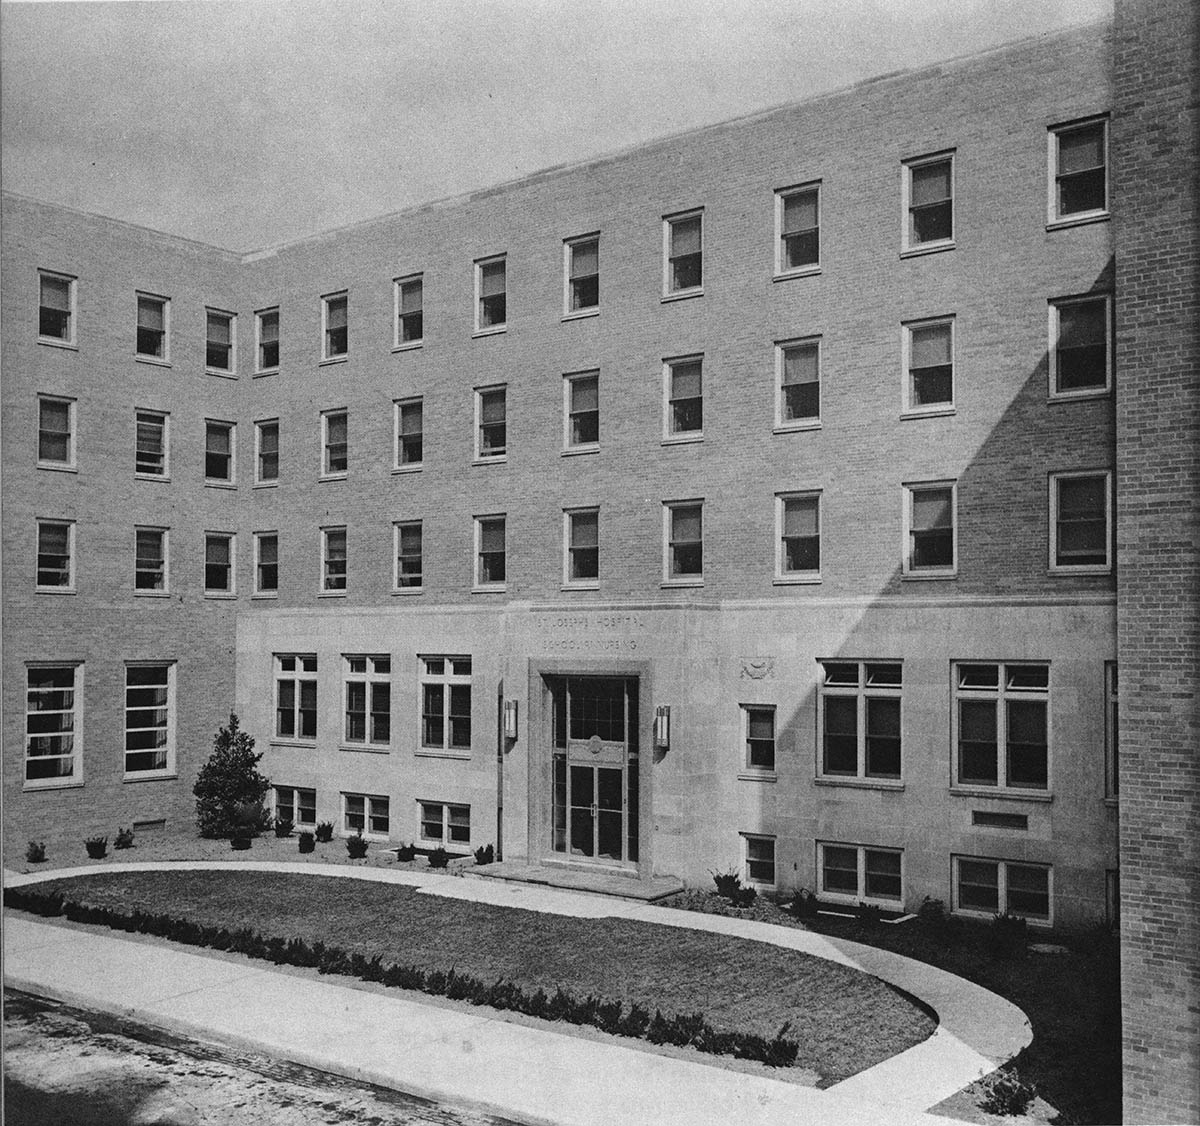 St. Joseph's Hospital School of Nursing